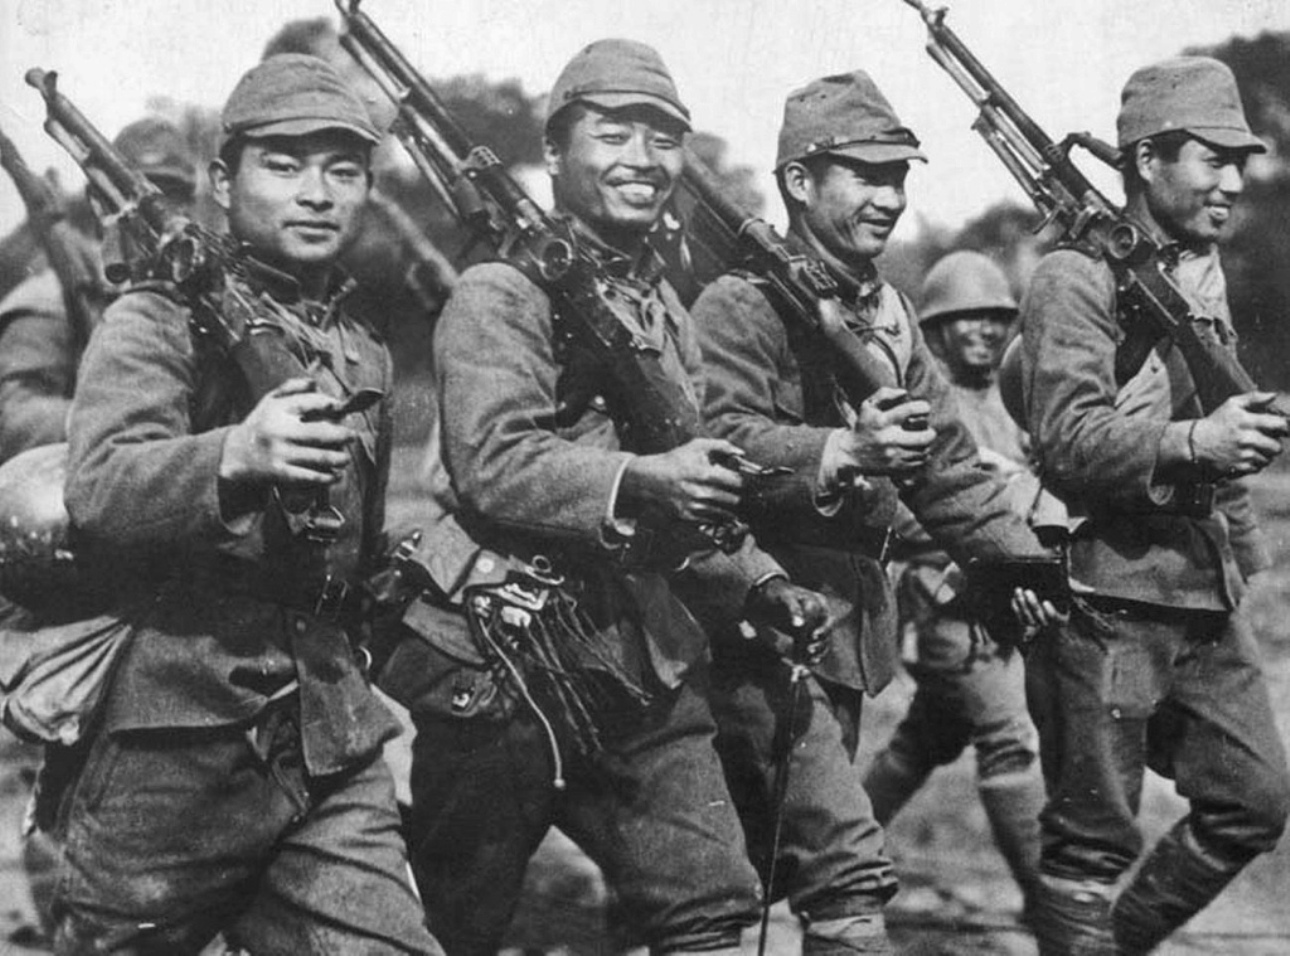 world war 2 did not hinder the growth of china japan and vietnam